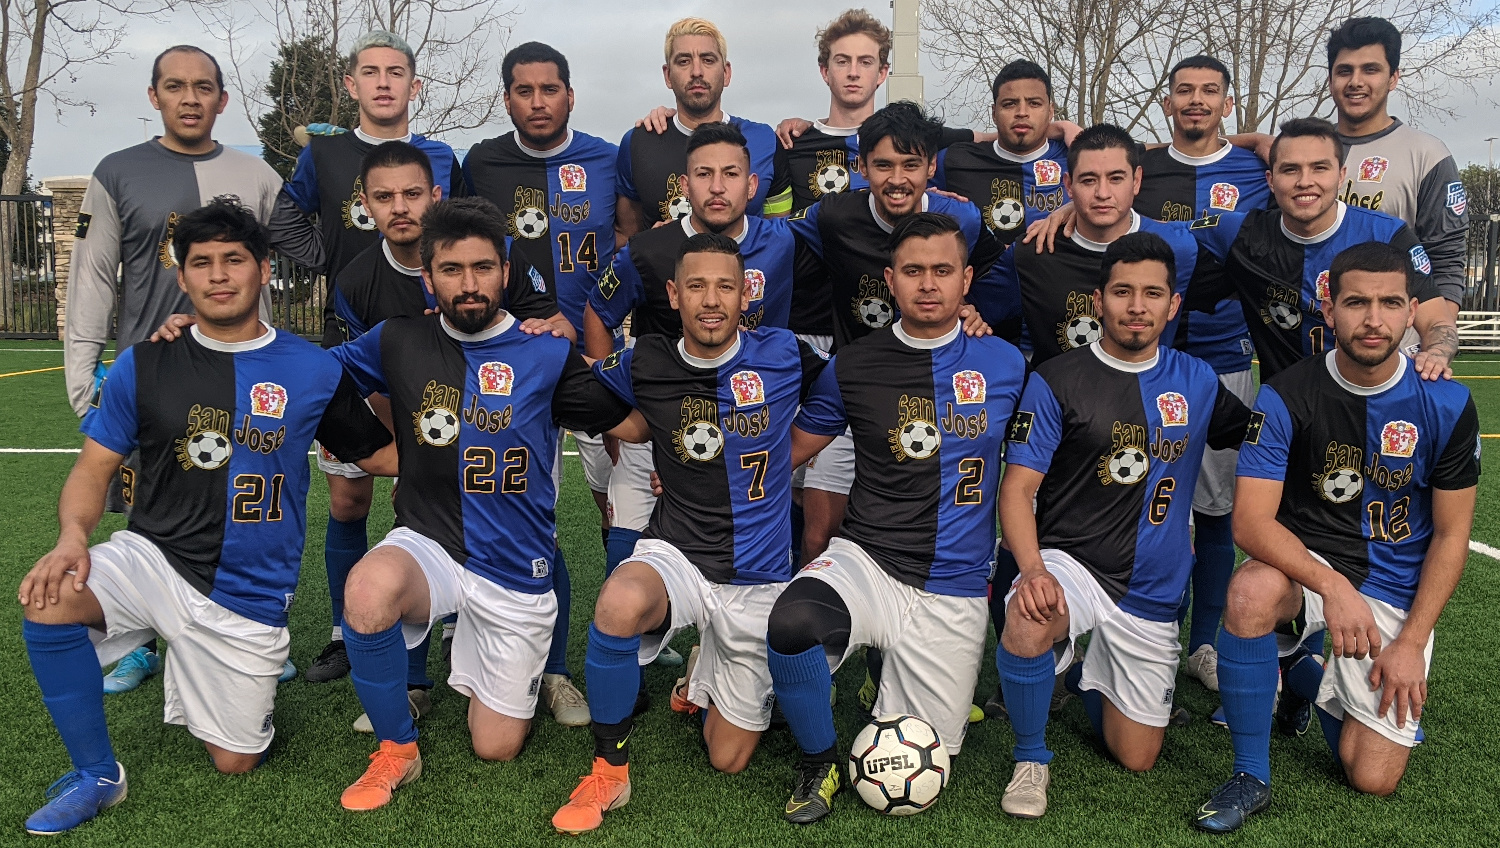 Real San Jose Soccer Club